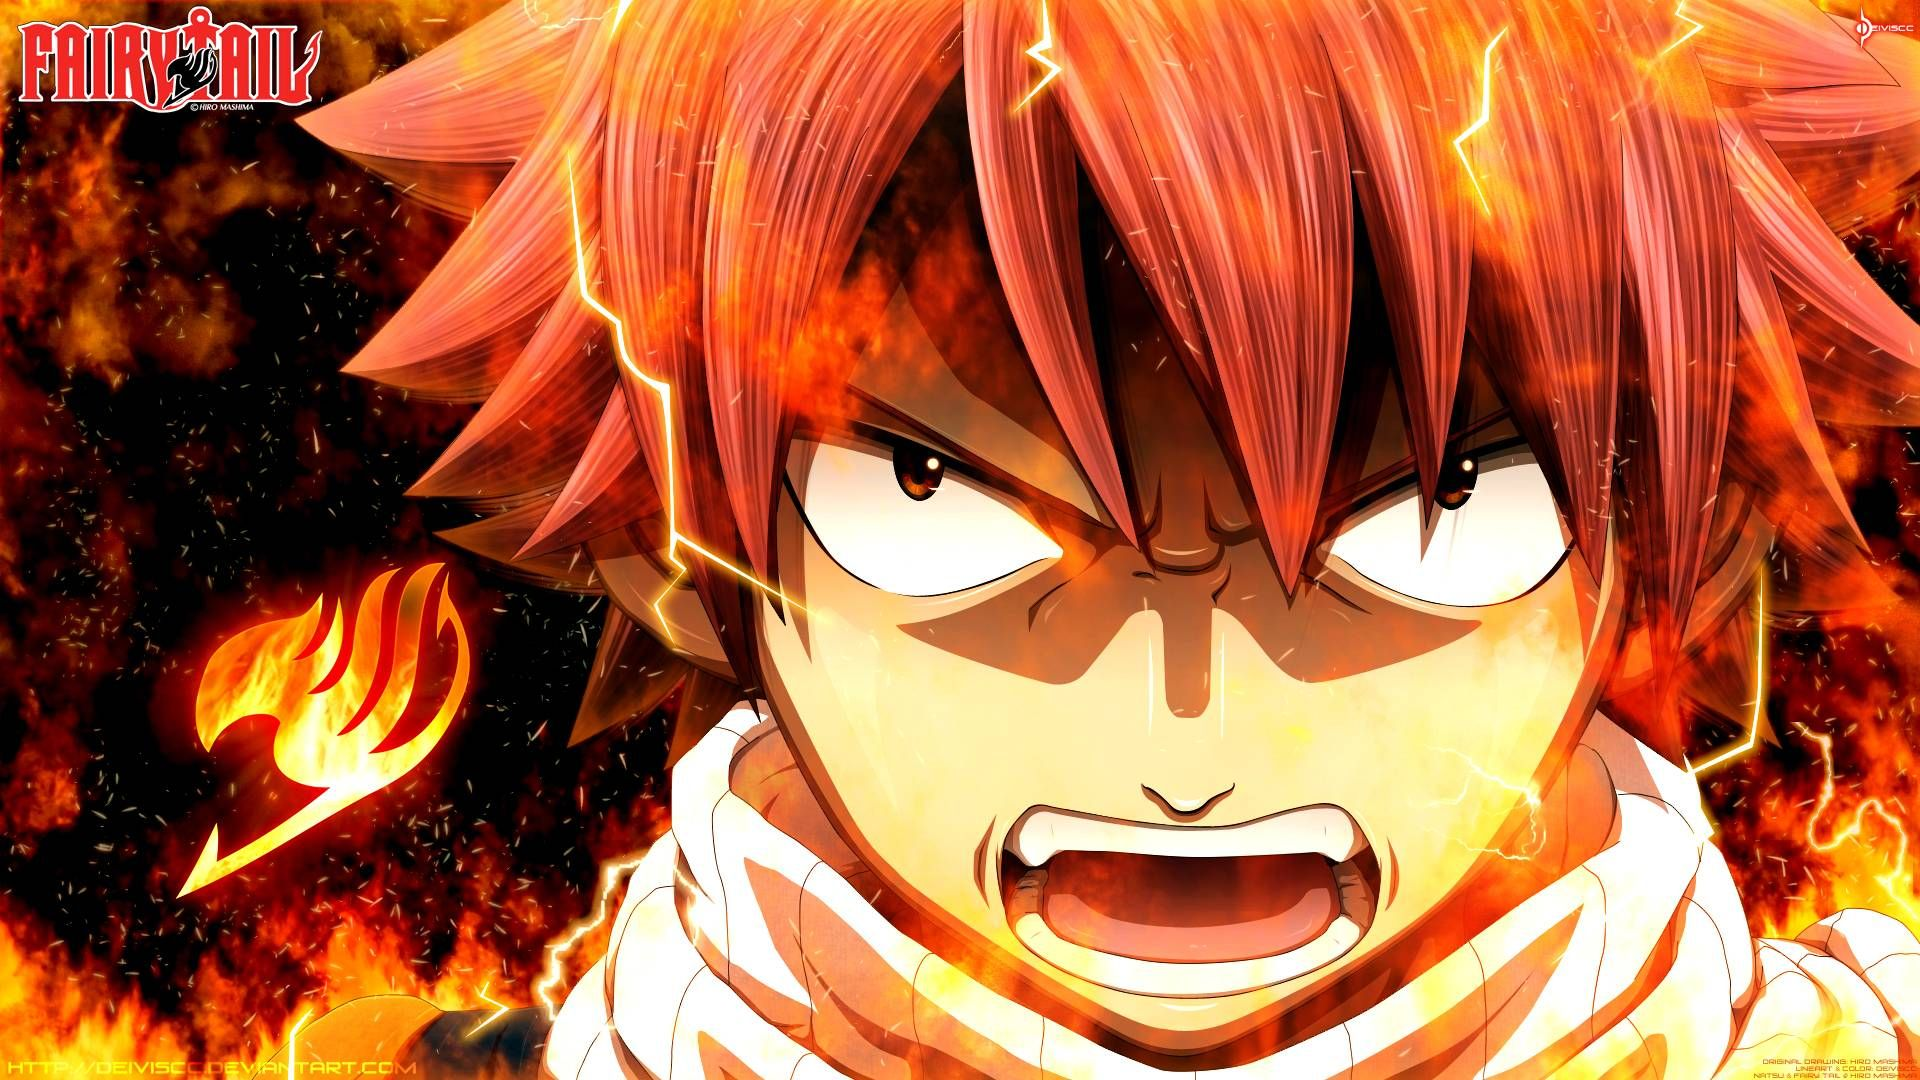 Natsu Fairy Tail By Andy On Series Books Comics Movies Fairy